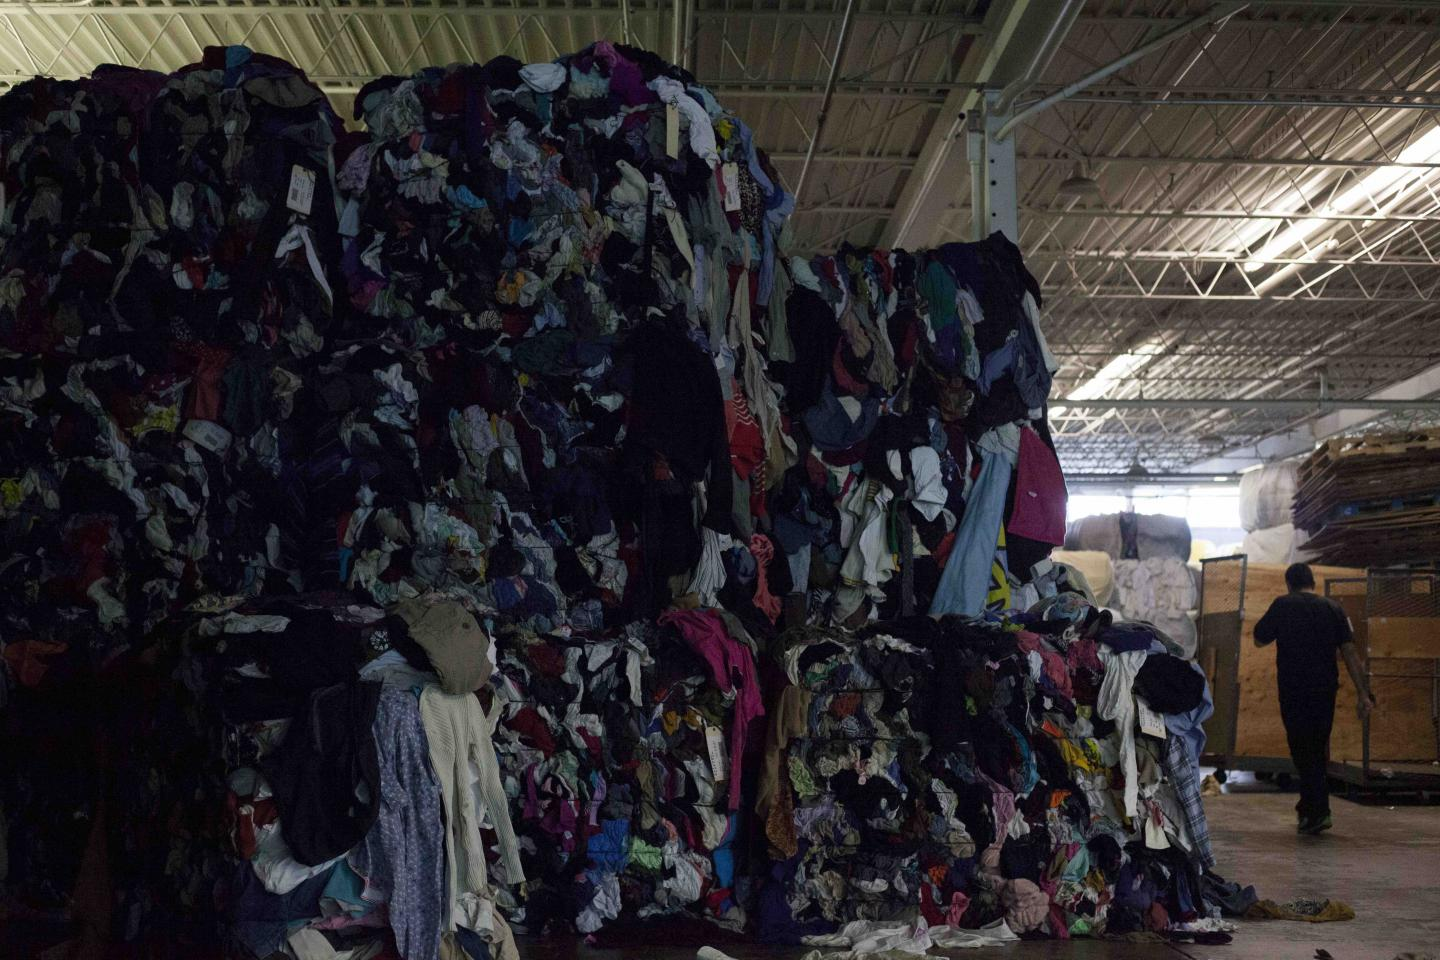 newsweek's picture of floor to ceiling pile of discarded clothes